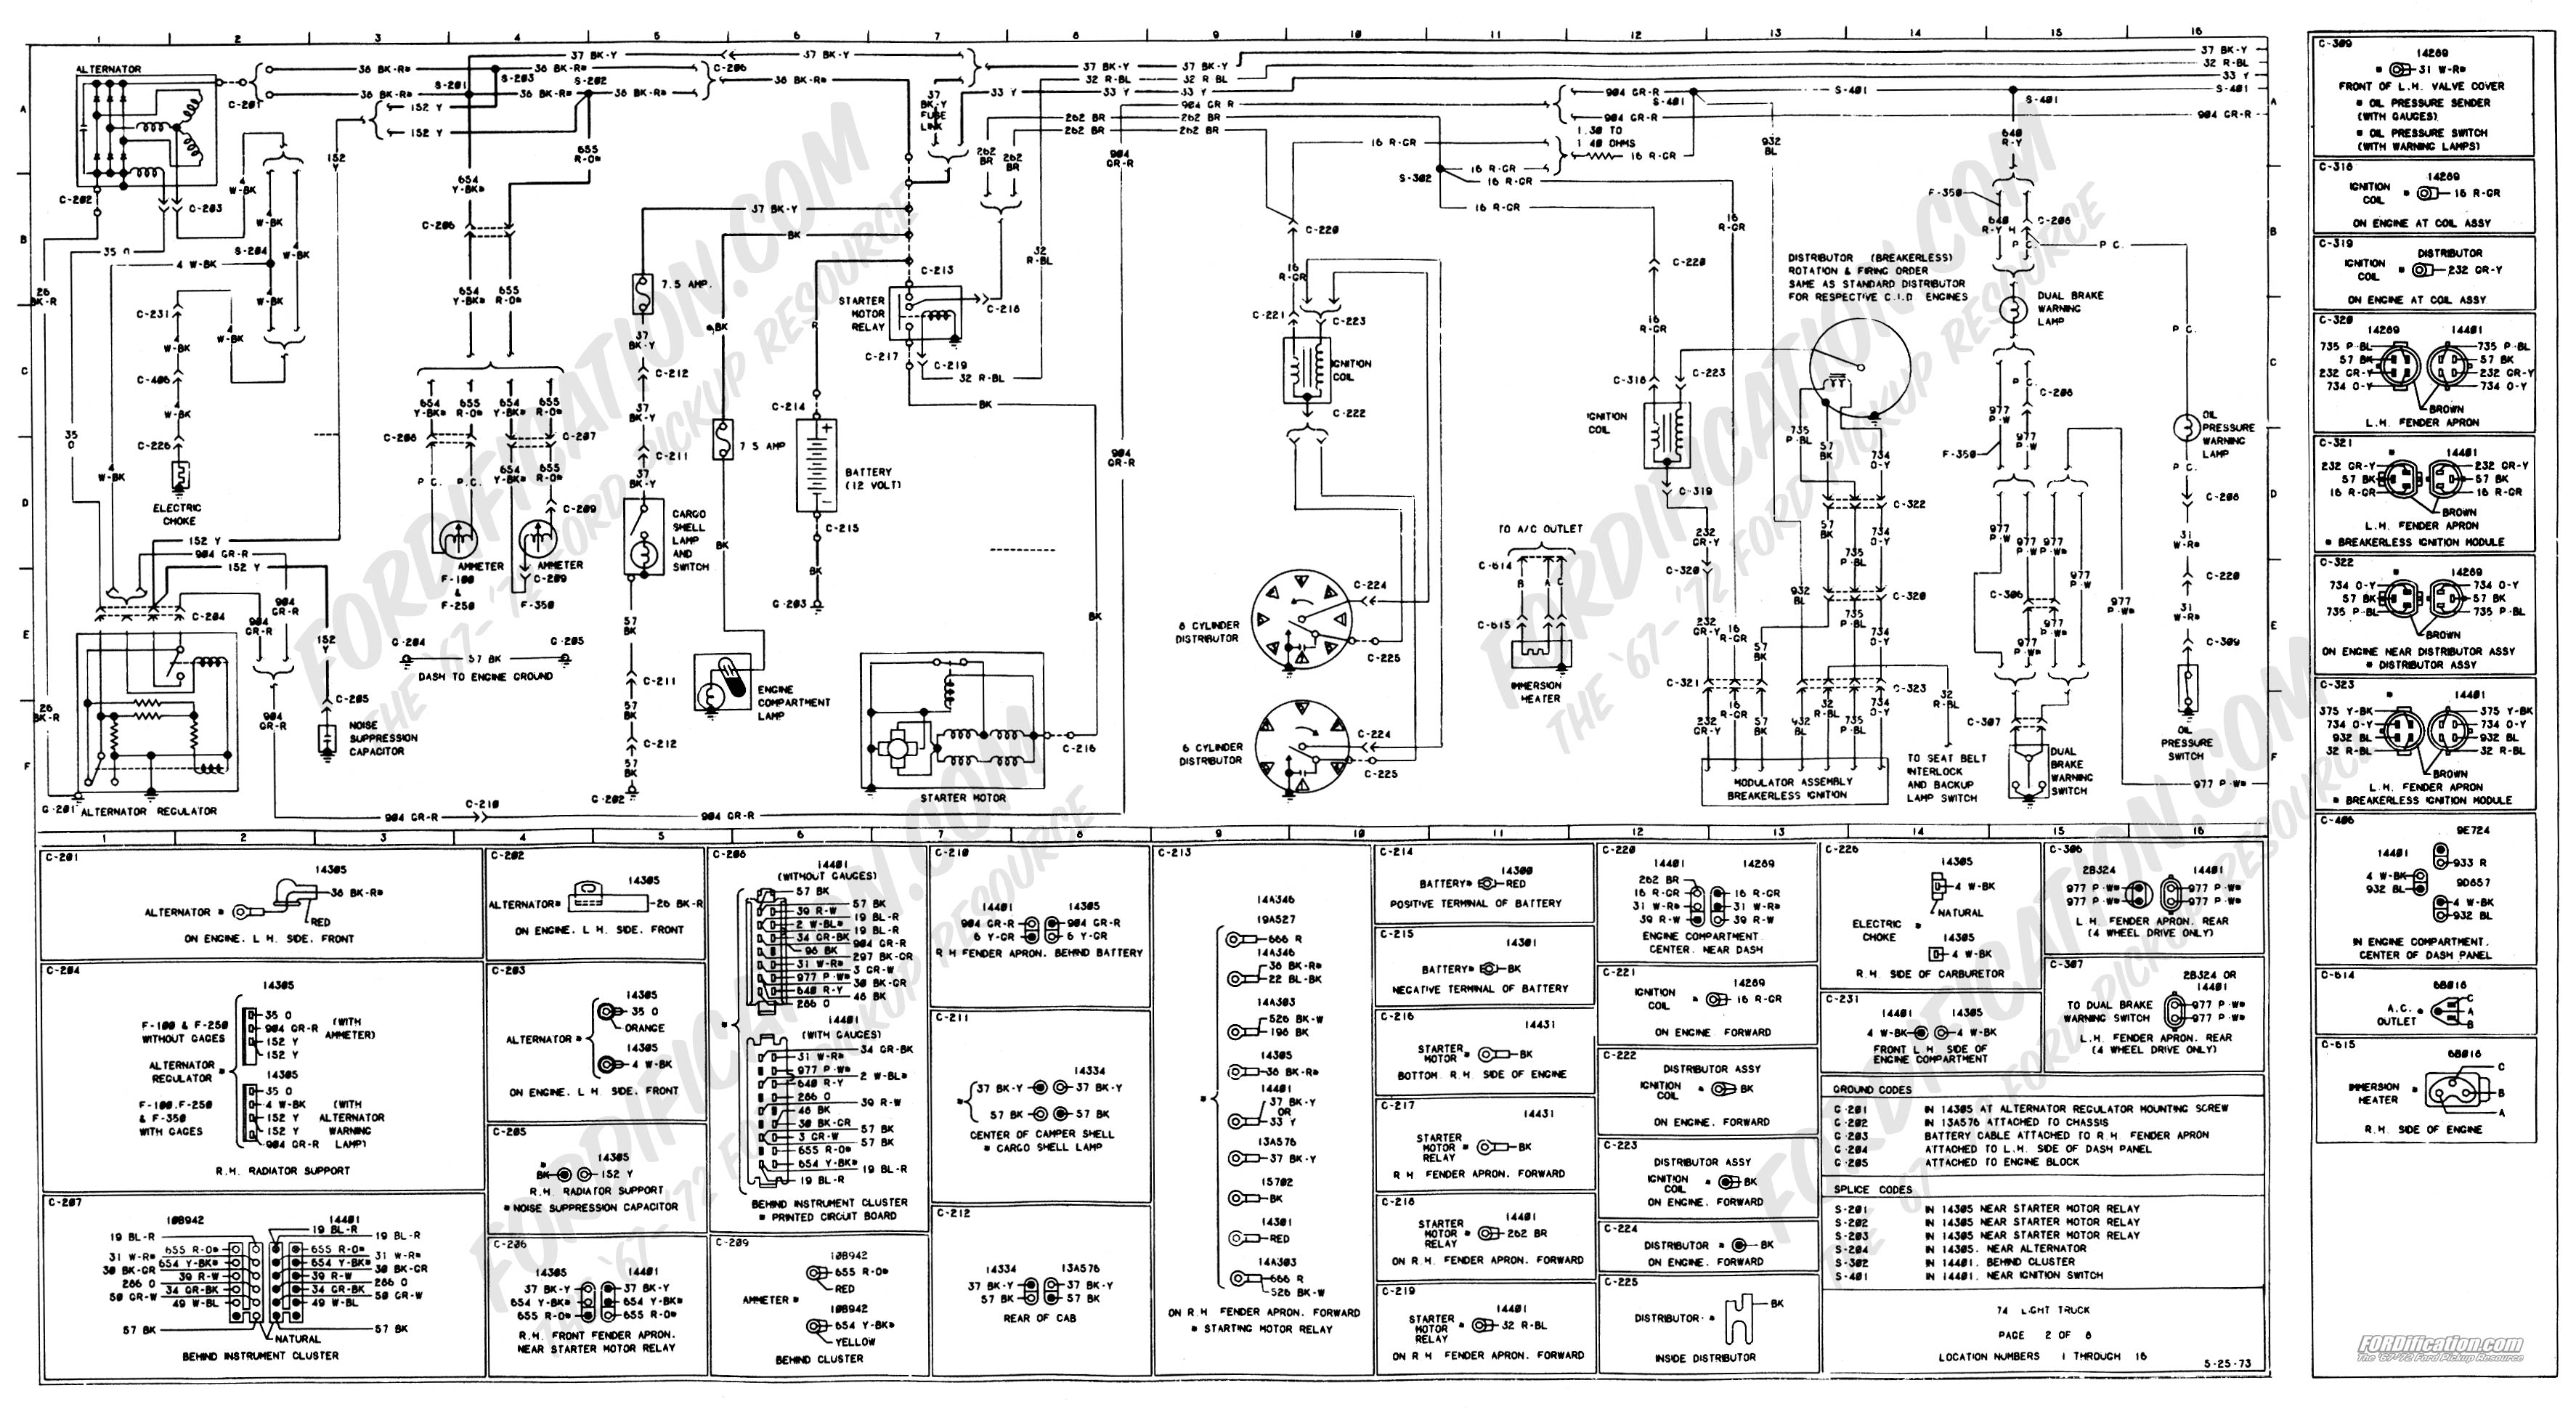 78 Ford Wiring Diagram Schematics 1989 F150 Alternator Harness 1973 1979 Truck Diagrams Fordification Net 1978